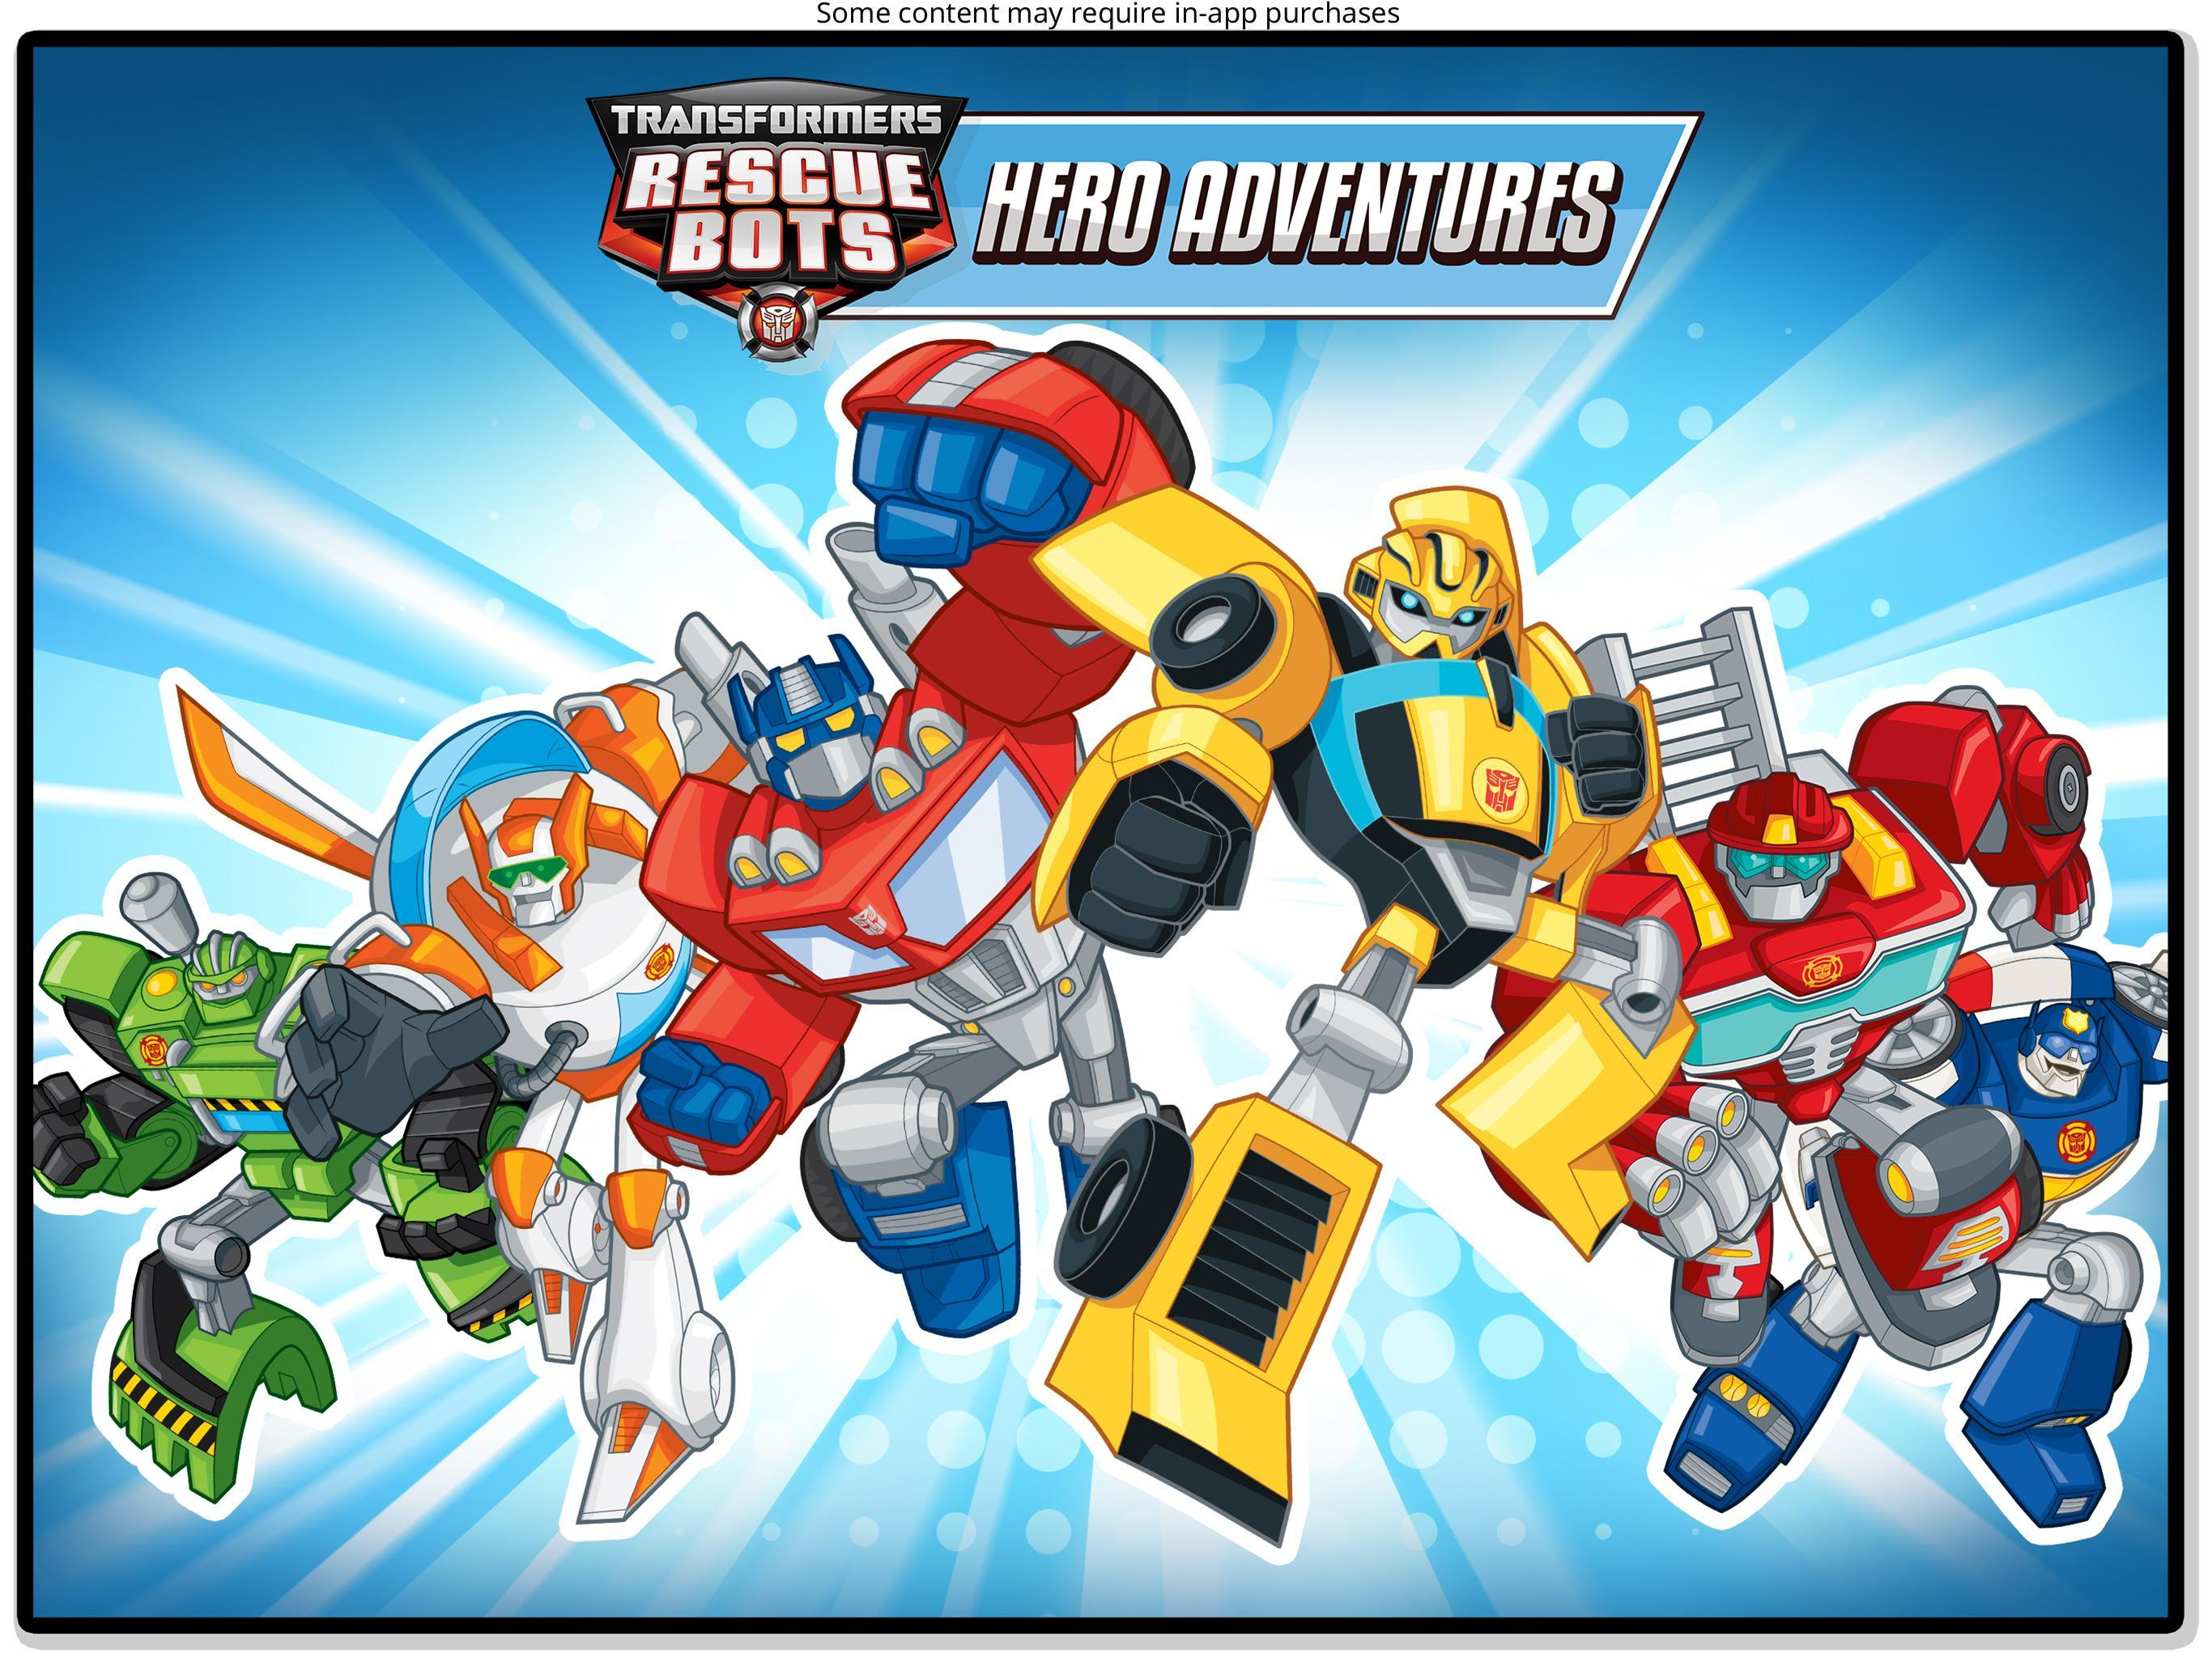 Transformers Rescue Bots: Hero Adventures 2.1 Screenshot 20